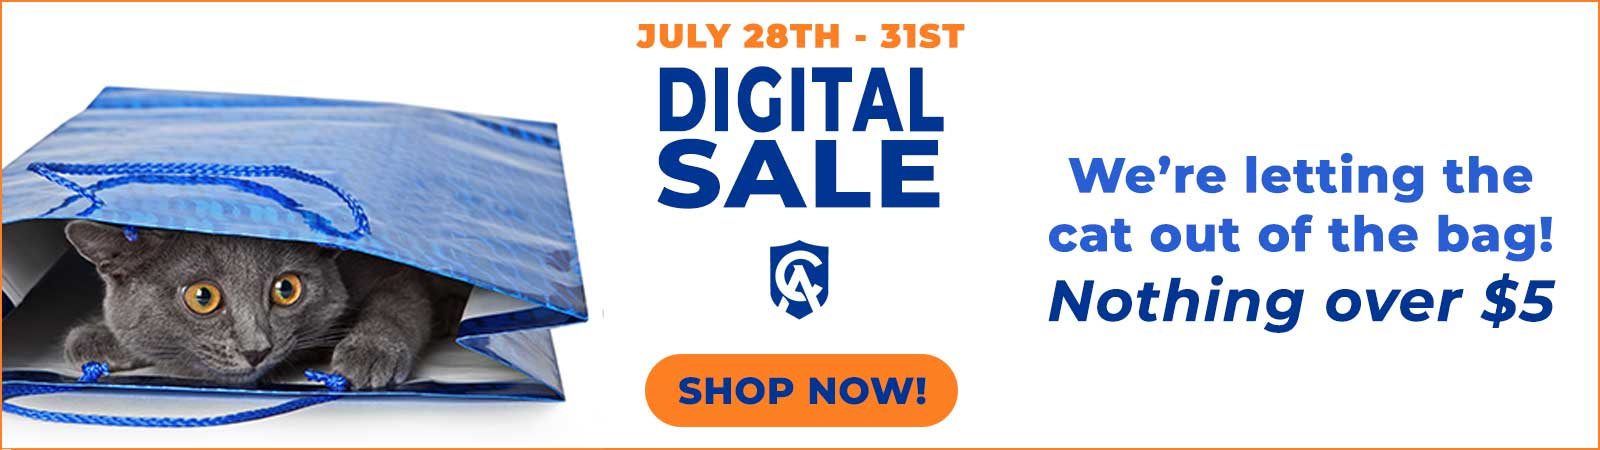 1600x450-cat-out-of-the-bag-digital-sale.jpg